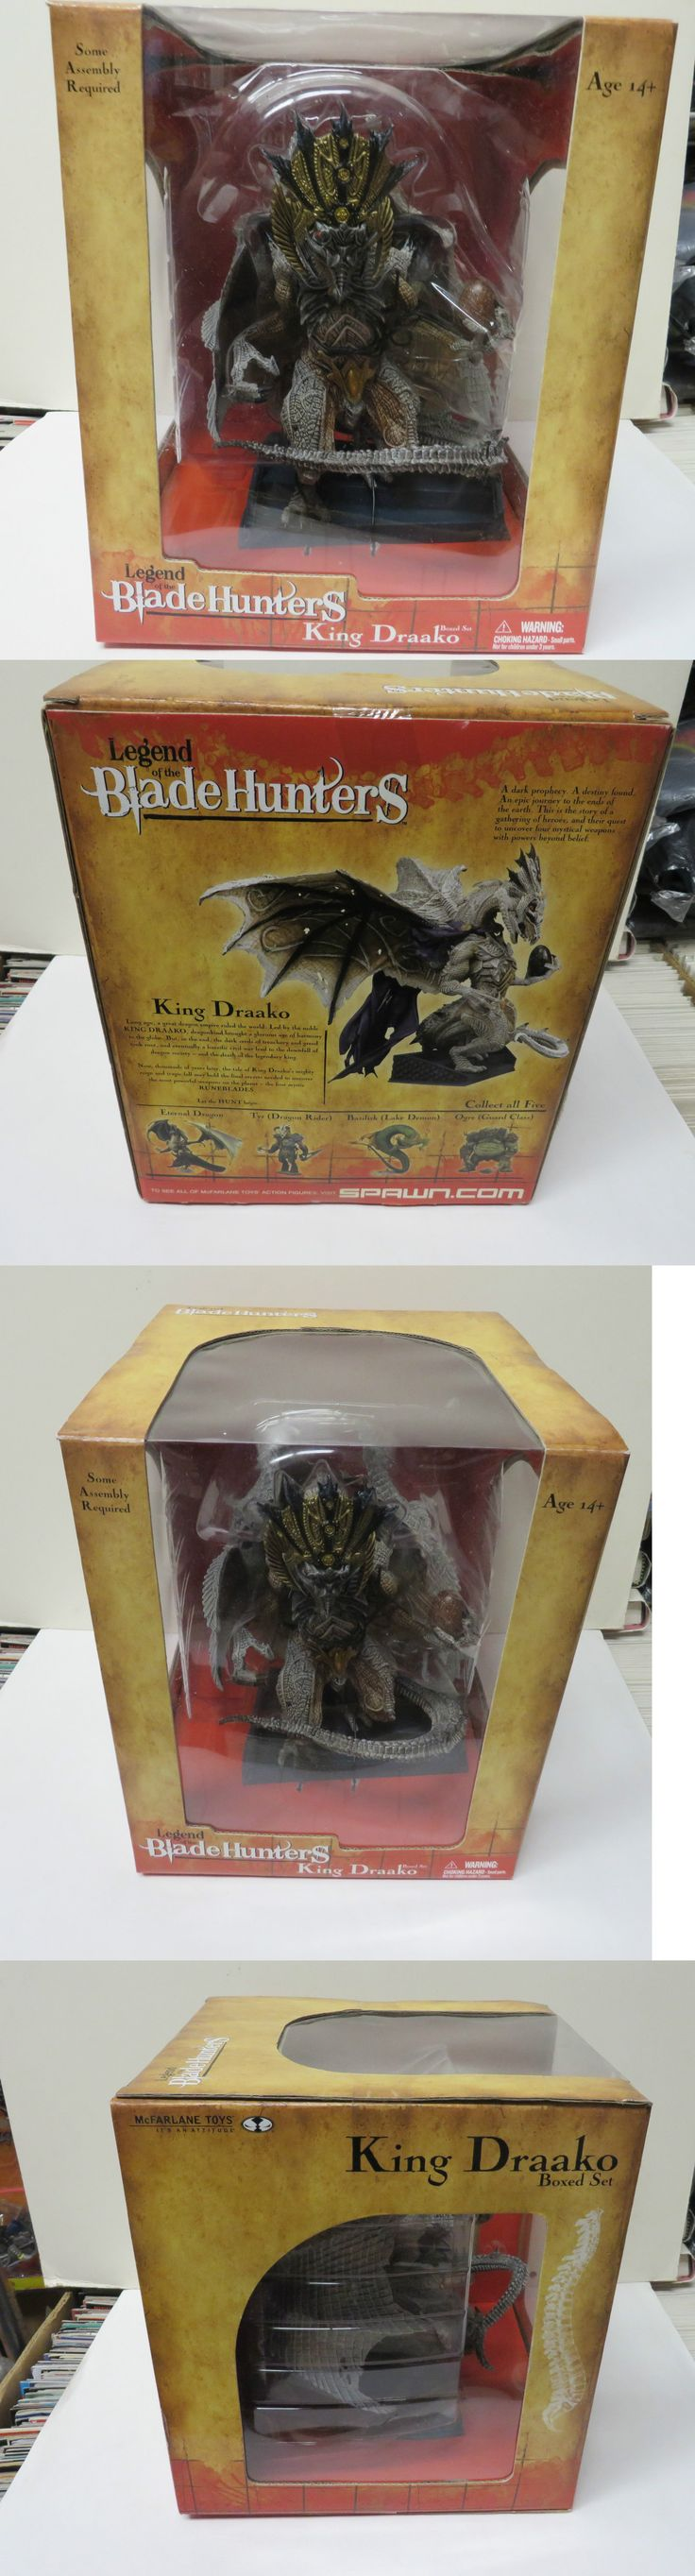 Fantasy 175693: Mcfarlane Toys Dragons Blade Hunters King Draako Dragon Deluxe Box Set New -> BUY IT NOW ONLY: $69.95 on eBay!